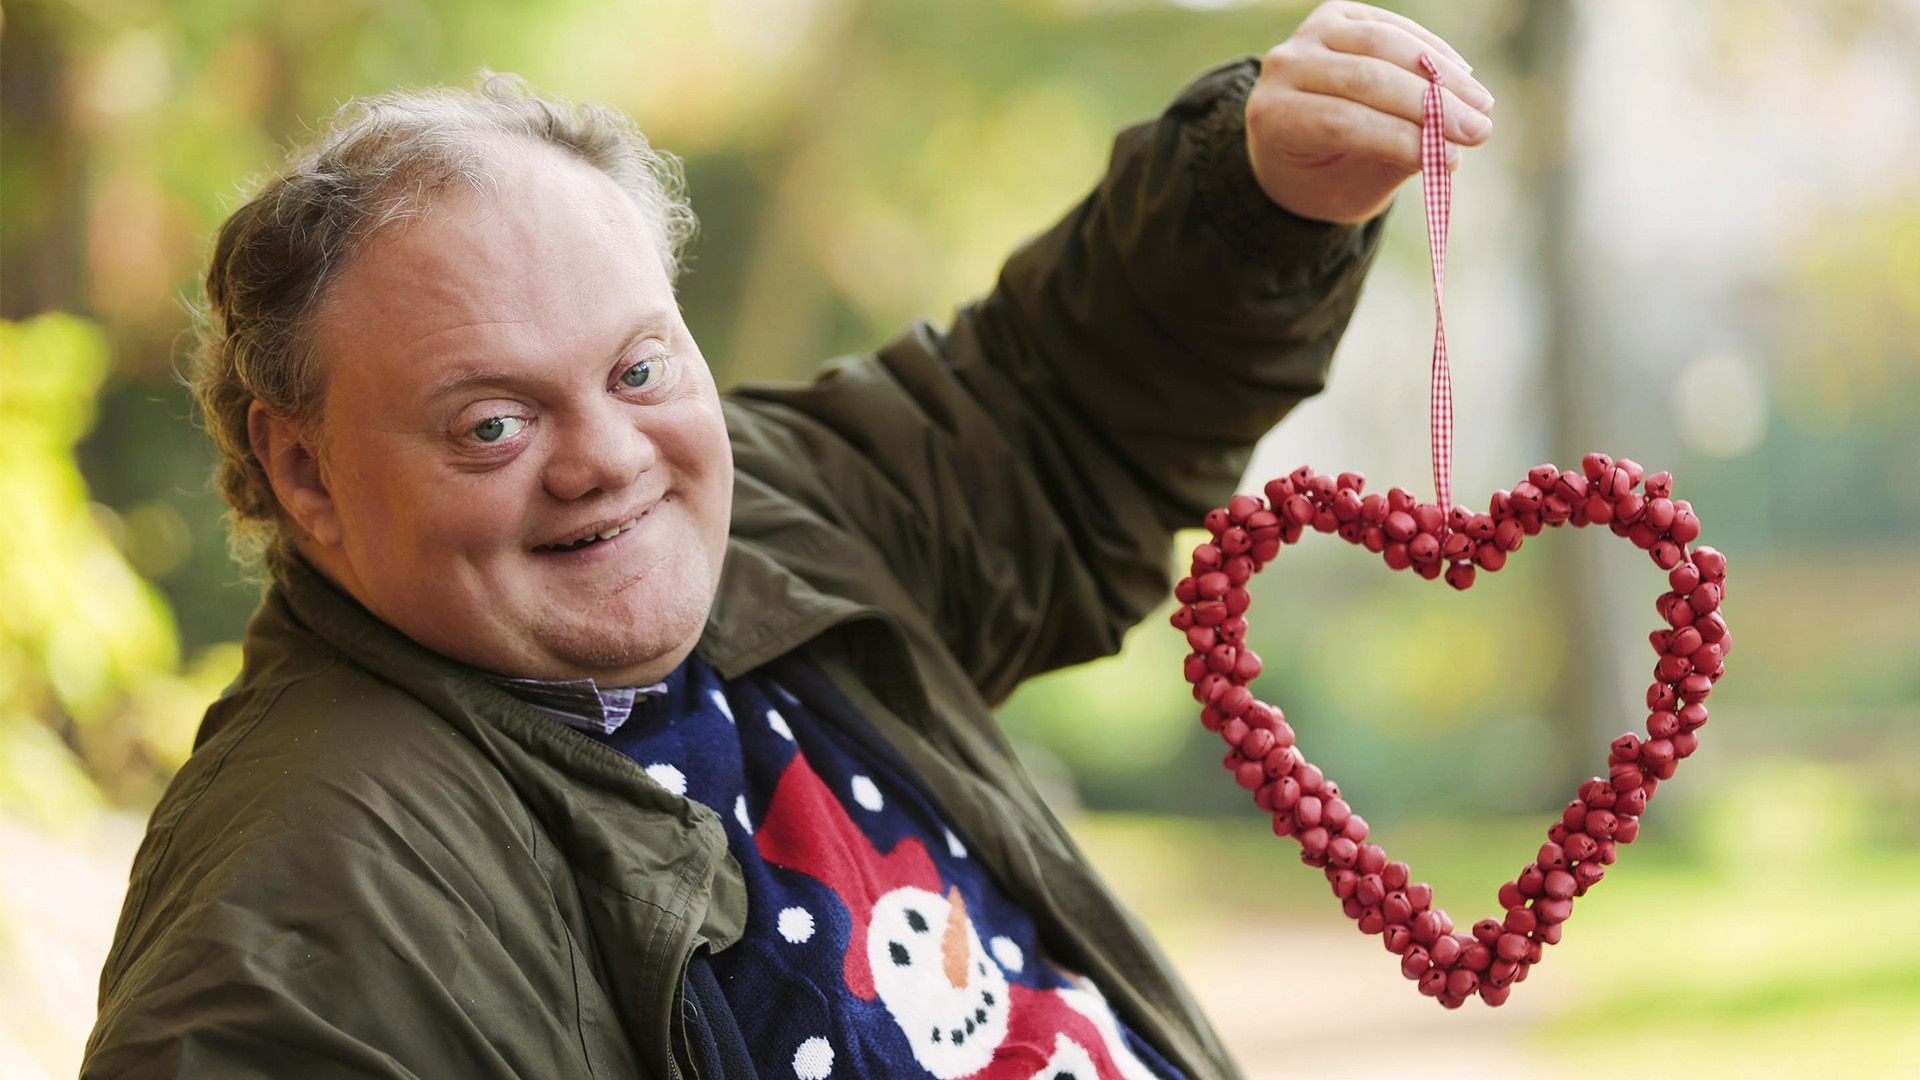 Shaine from The Undateables holds up a love heart shaped wreath